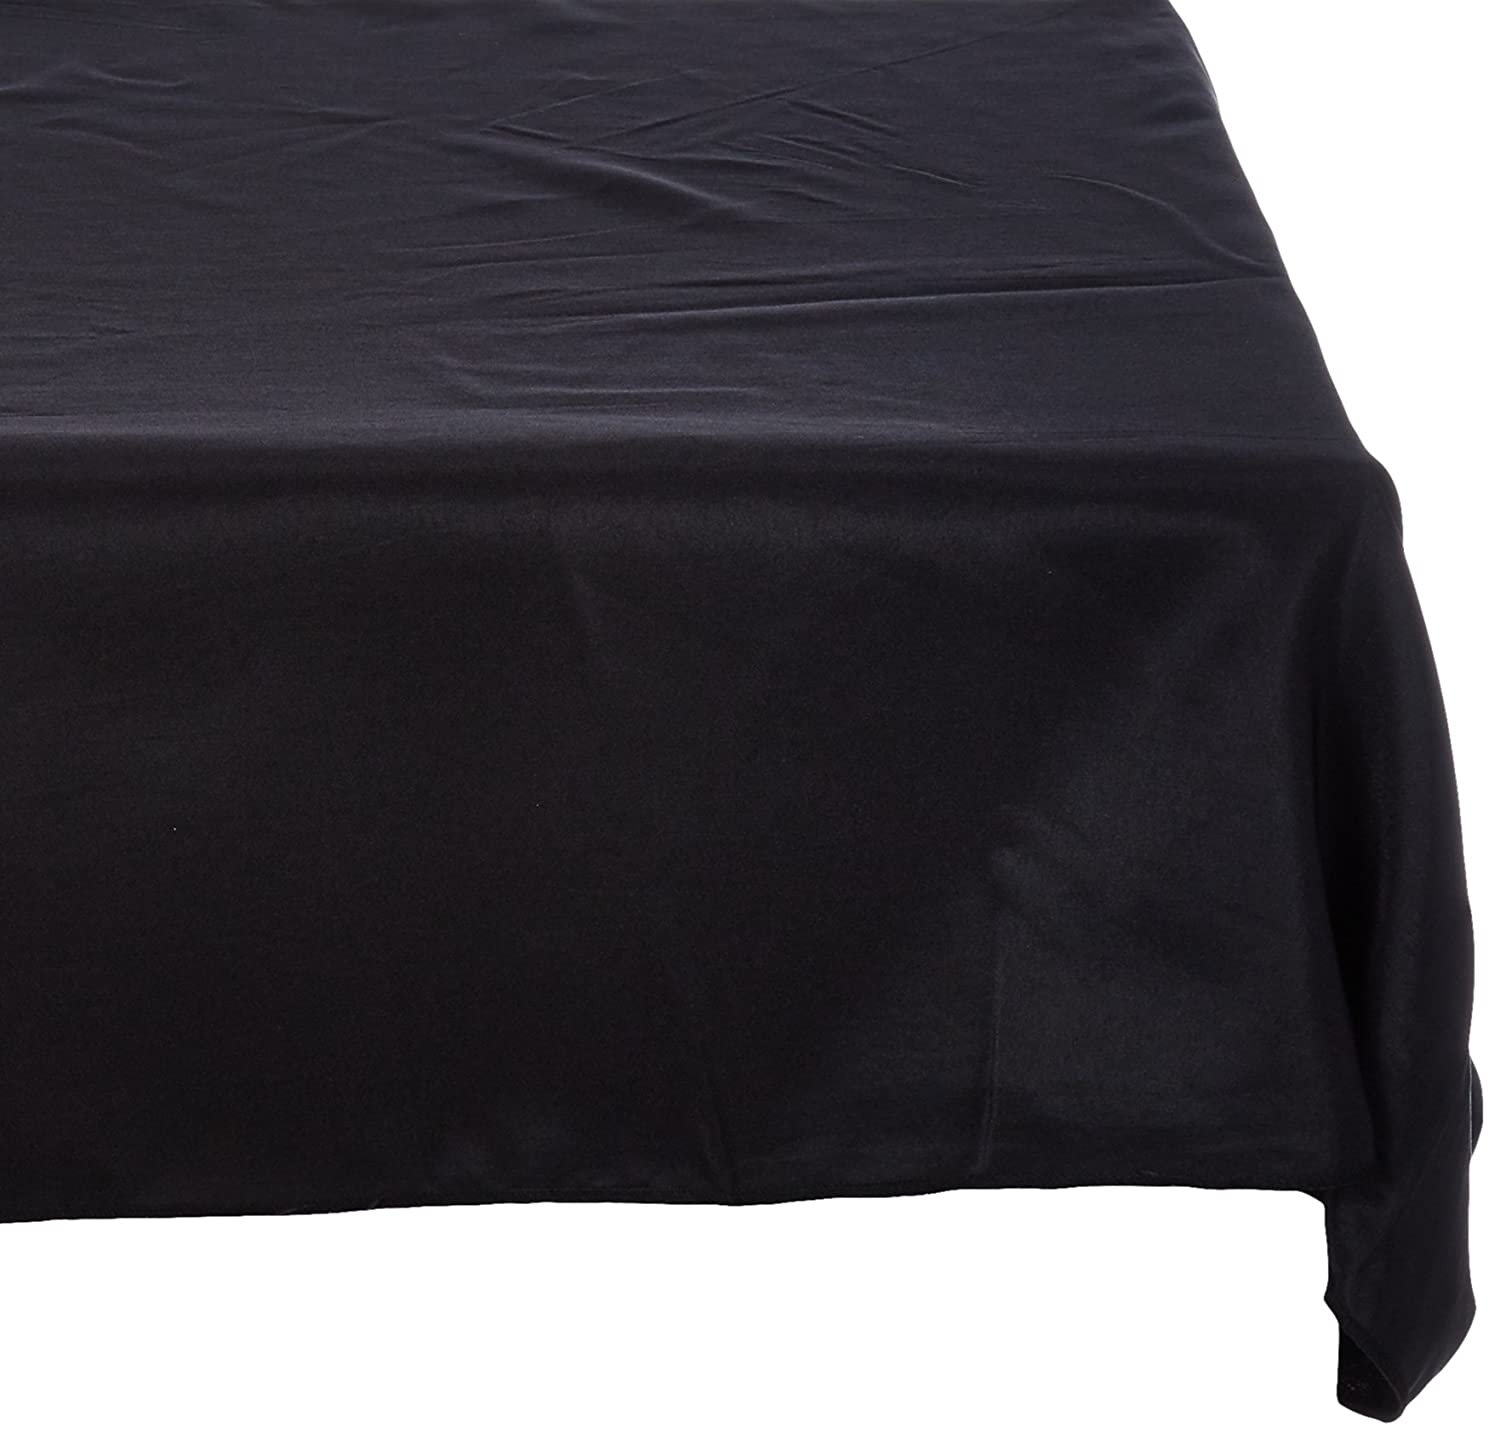 linentablecloth 8 ft fitted polyester tablecloth